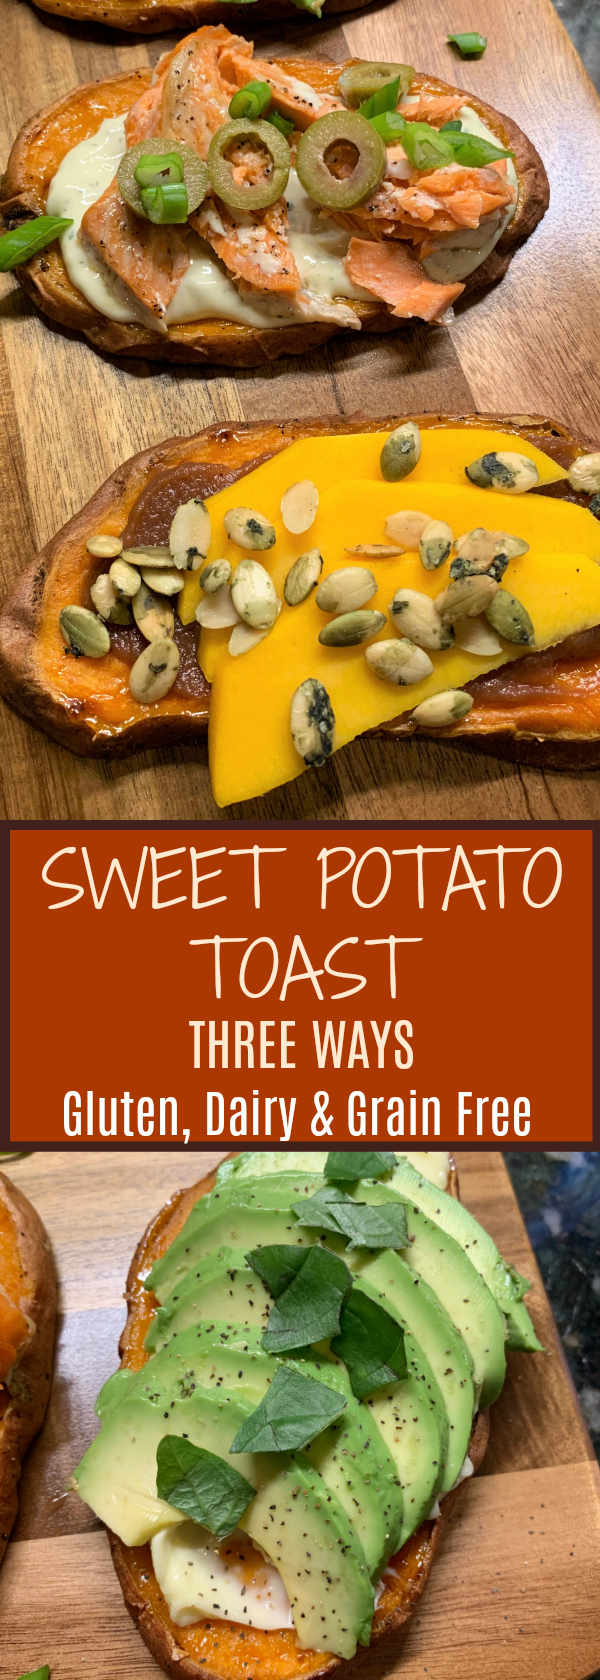 Make Sweet Potato Toast easily in your oven with three different toppings! Delicious for Tapas, Appetizers and a Fun Dinner!